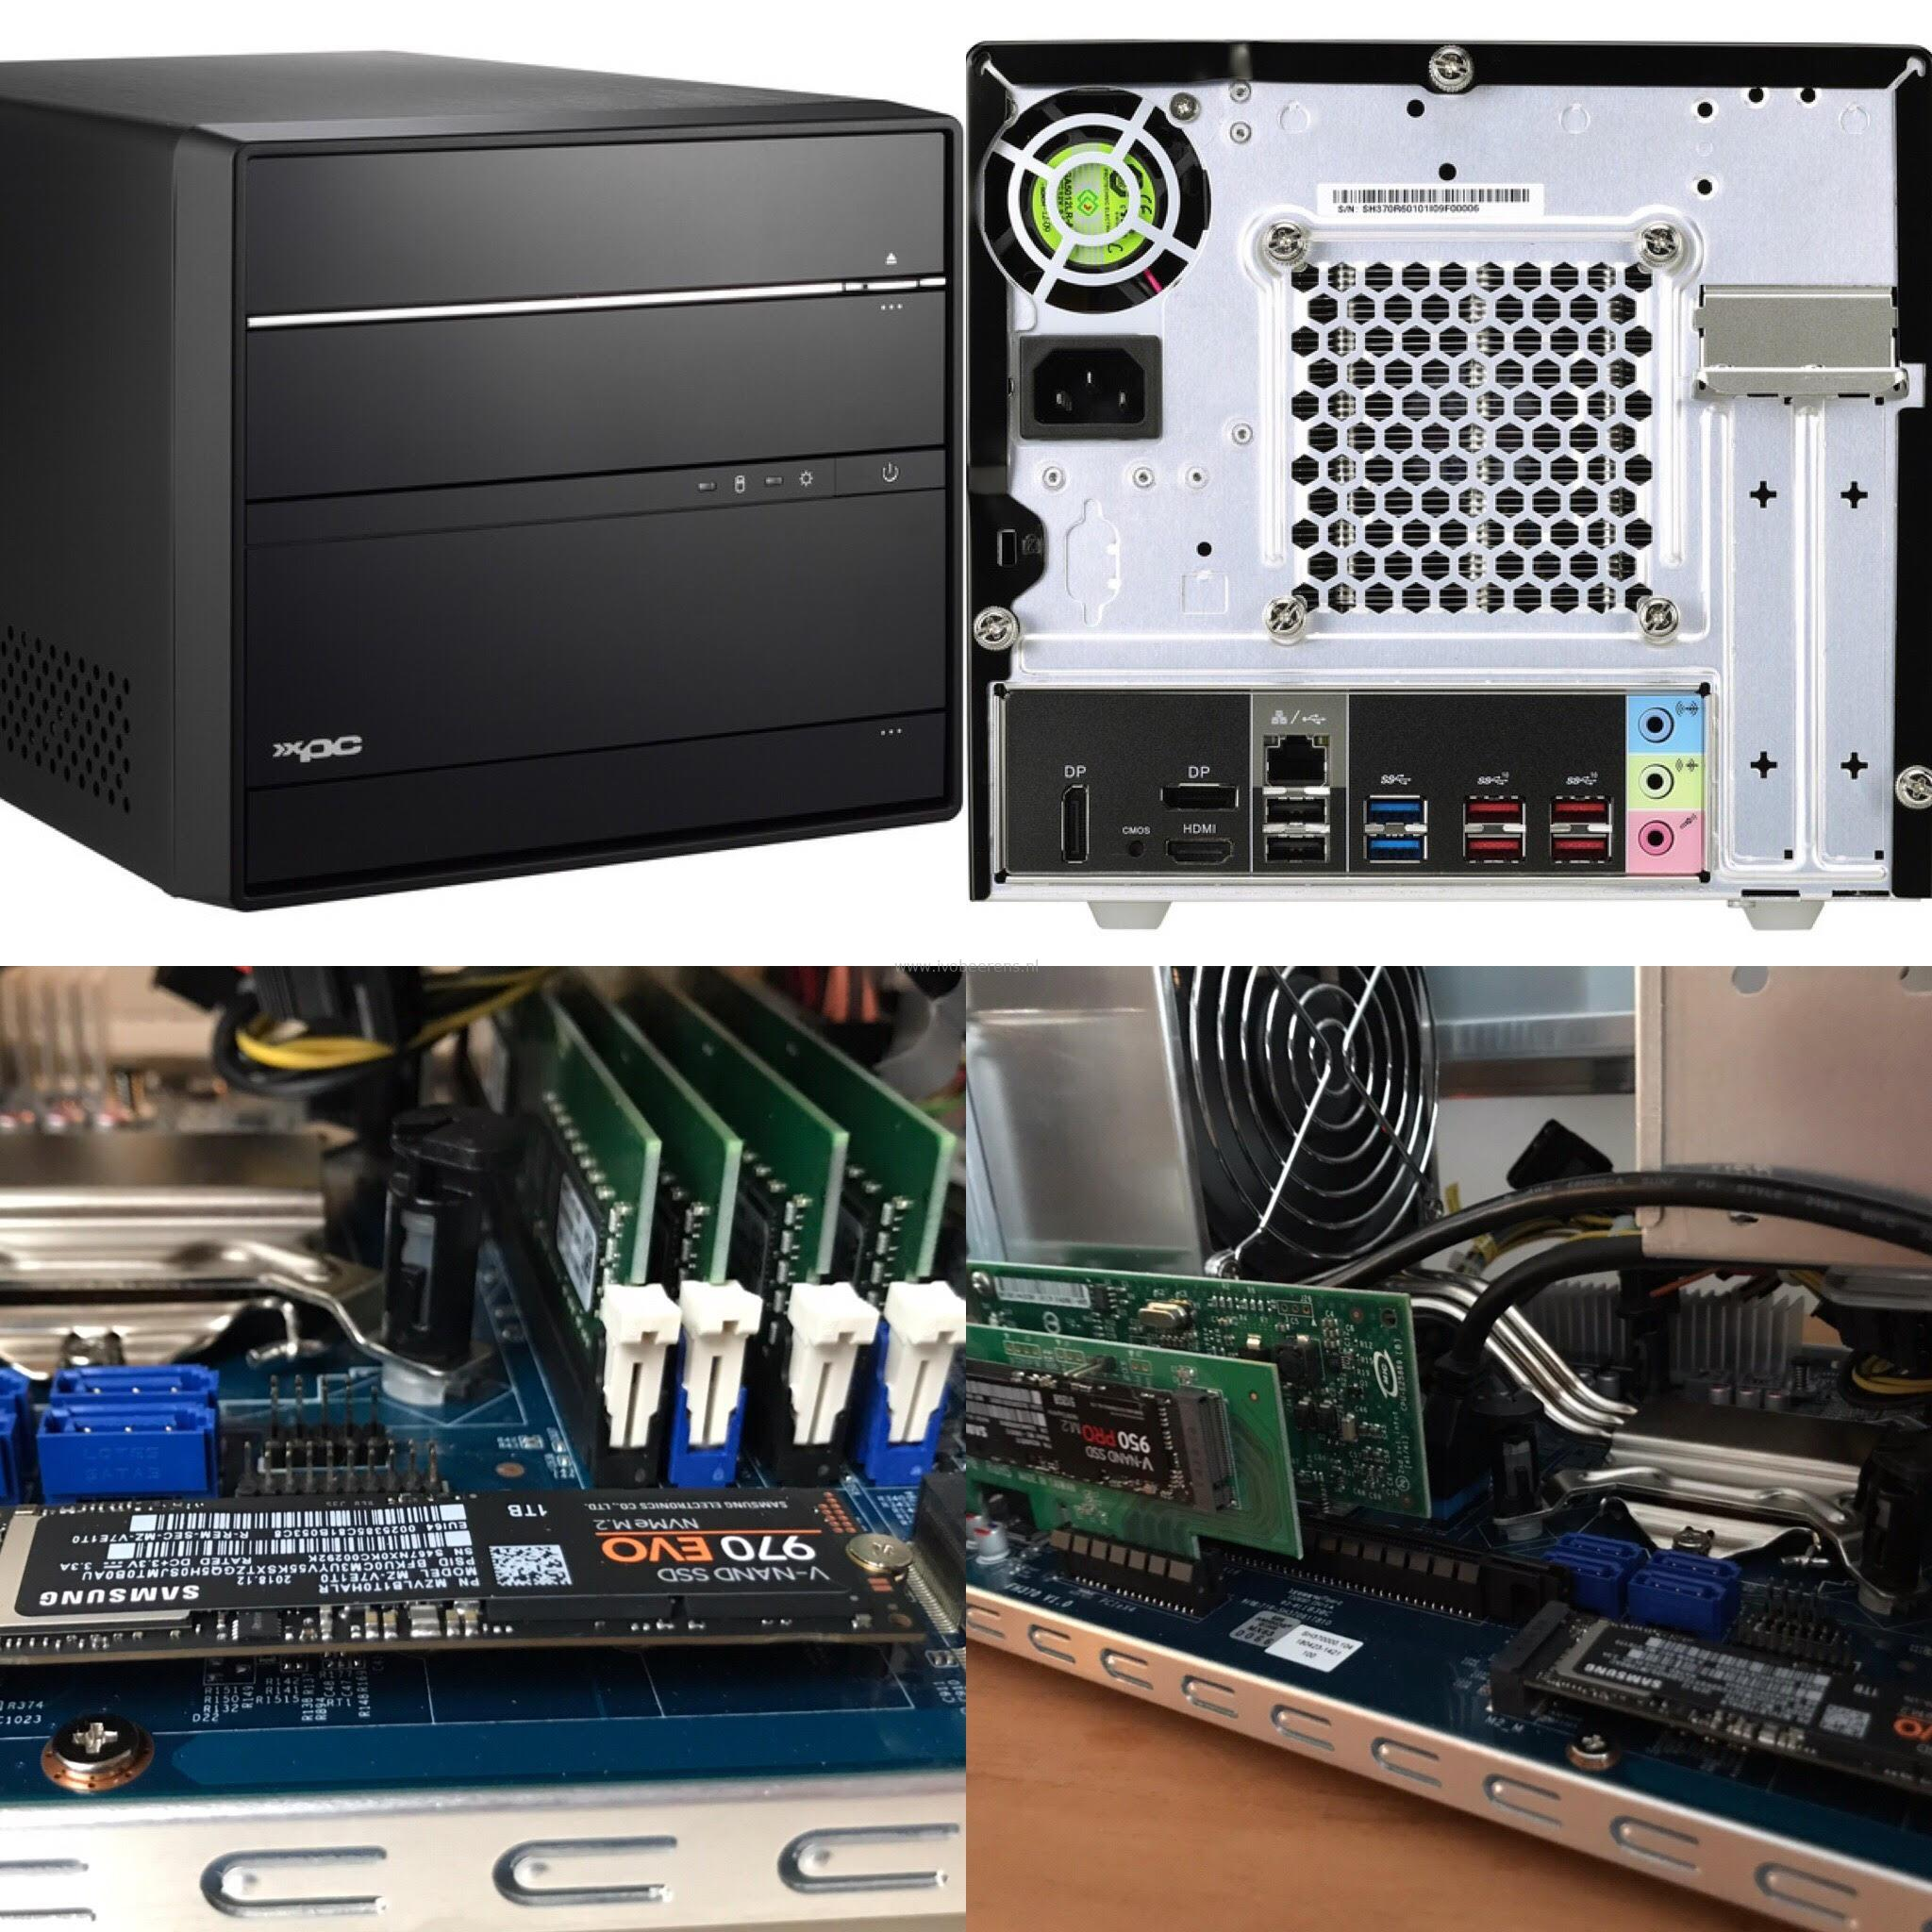 Using the Shuttle SH370R6 plus as home lab server